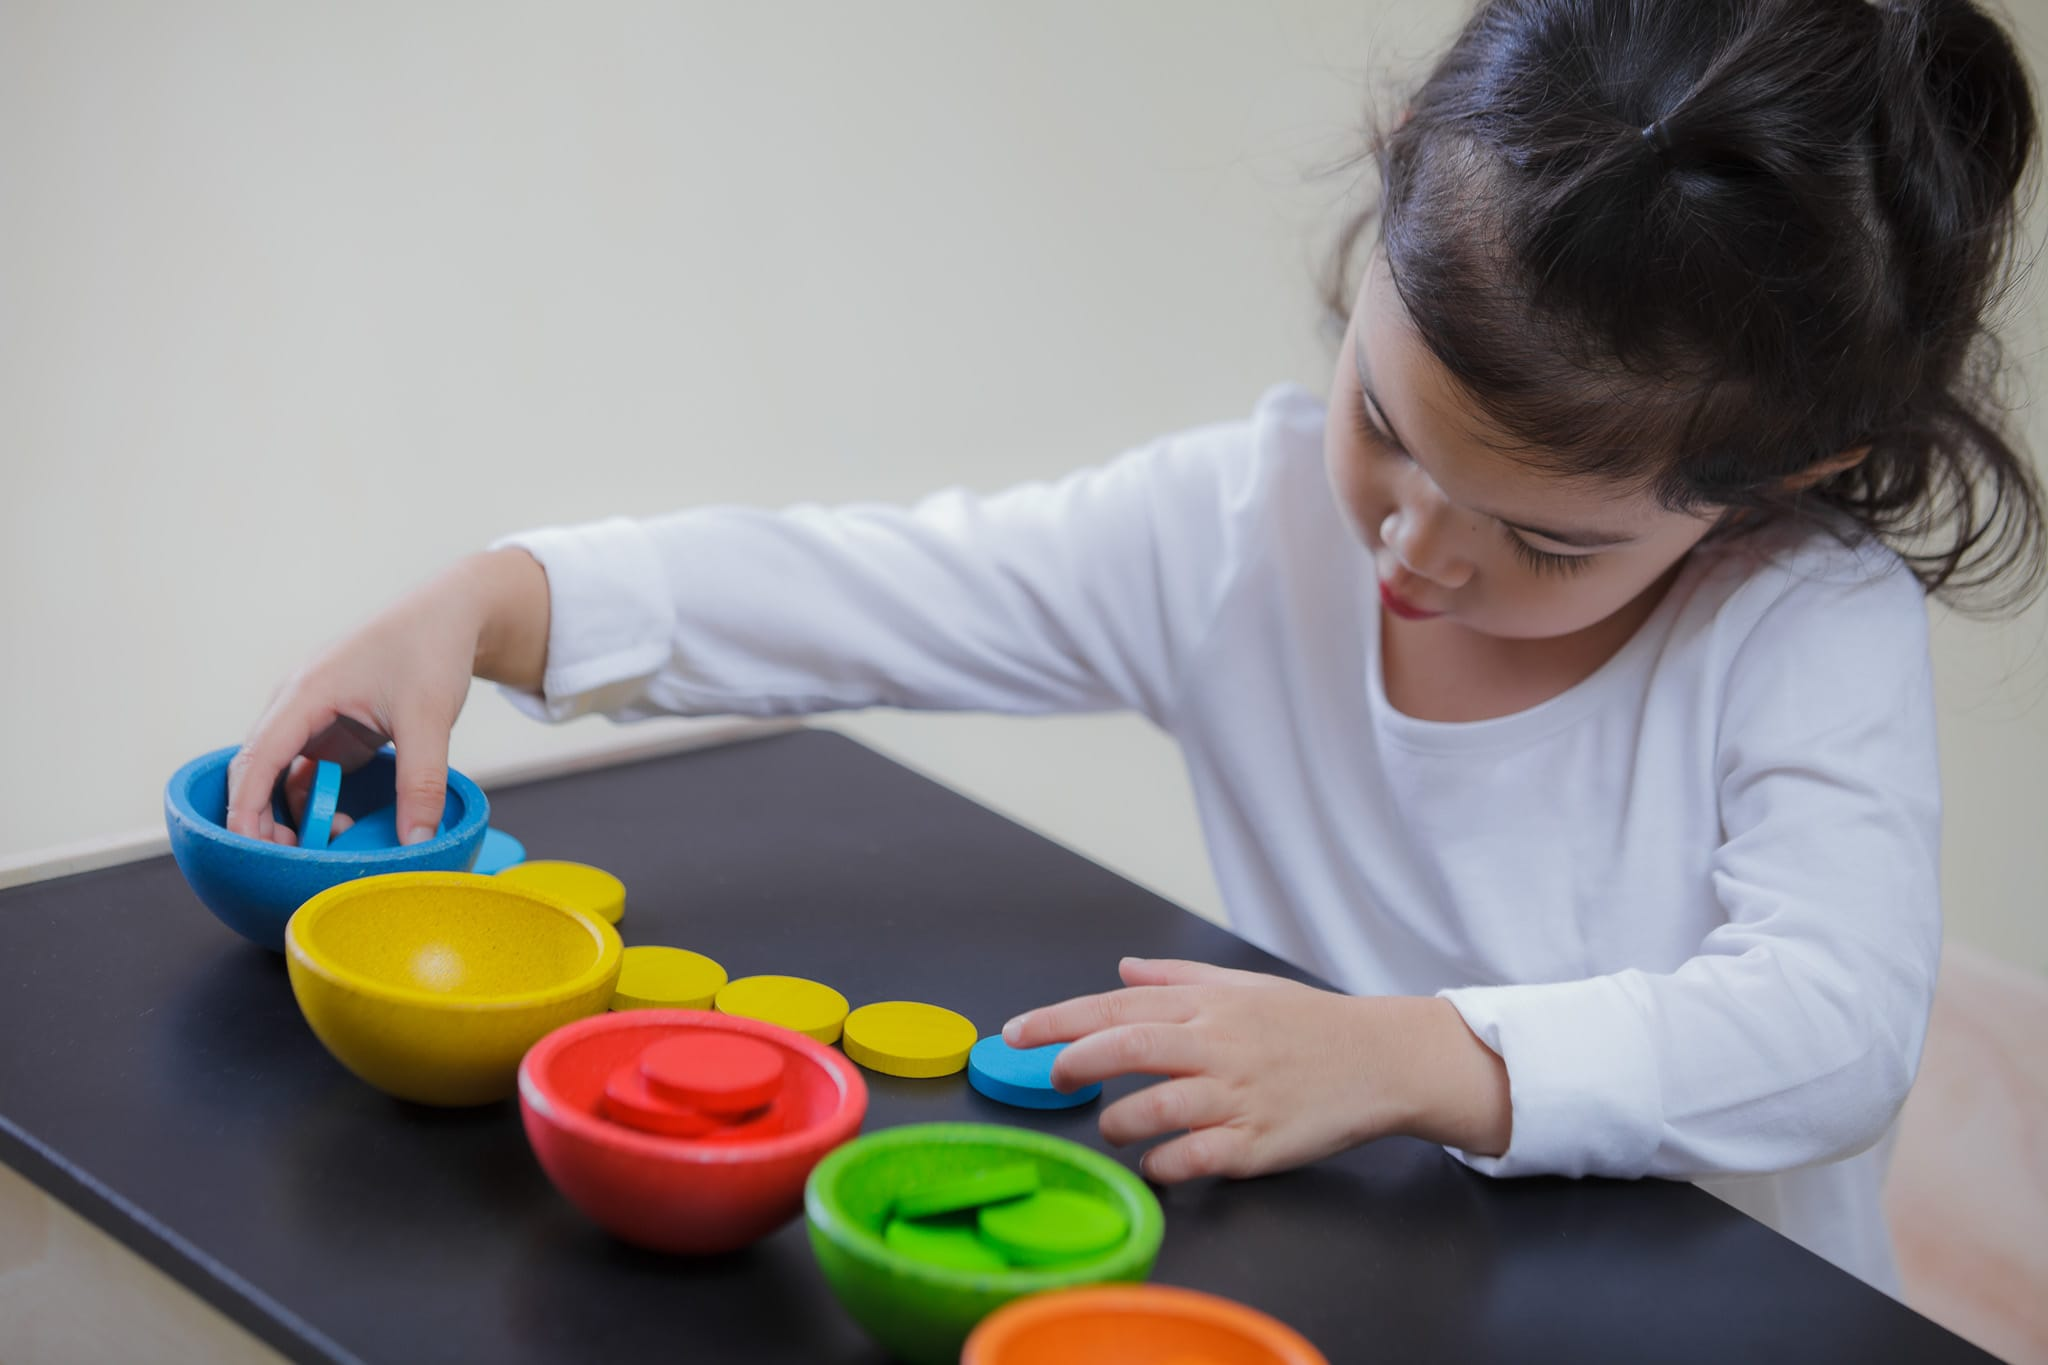 5360_PlanToys_SORT_and_COUNT_CUPS_Learning_and_Education_Mathematical_Fine_Motor_Coordination_18m_Wooden_toys_Education_toys_Safety_Toys_Non-toxic_0.jpg